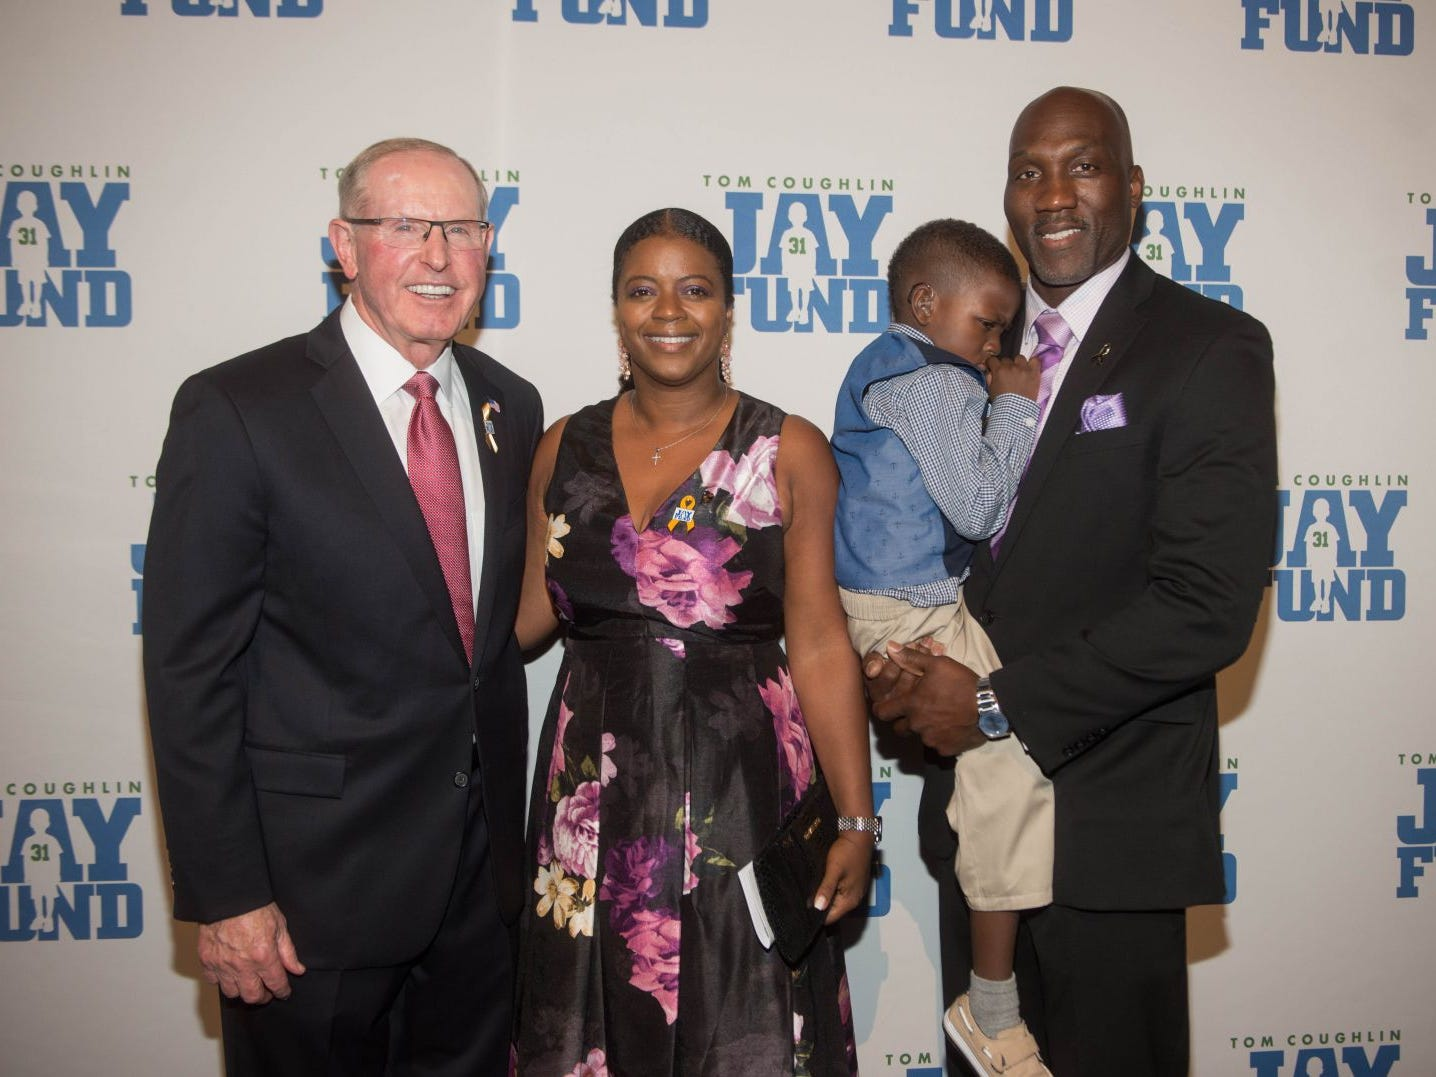 Tom Coughlin, Kesha Davis, Cameron and Reggie Davis. The 14th annual Jay Fund Champions for Children Gala was held at Cipriani 42nd Street. 09/21/2018